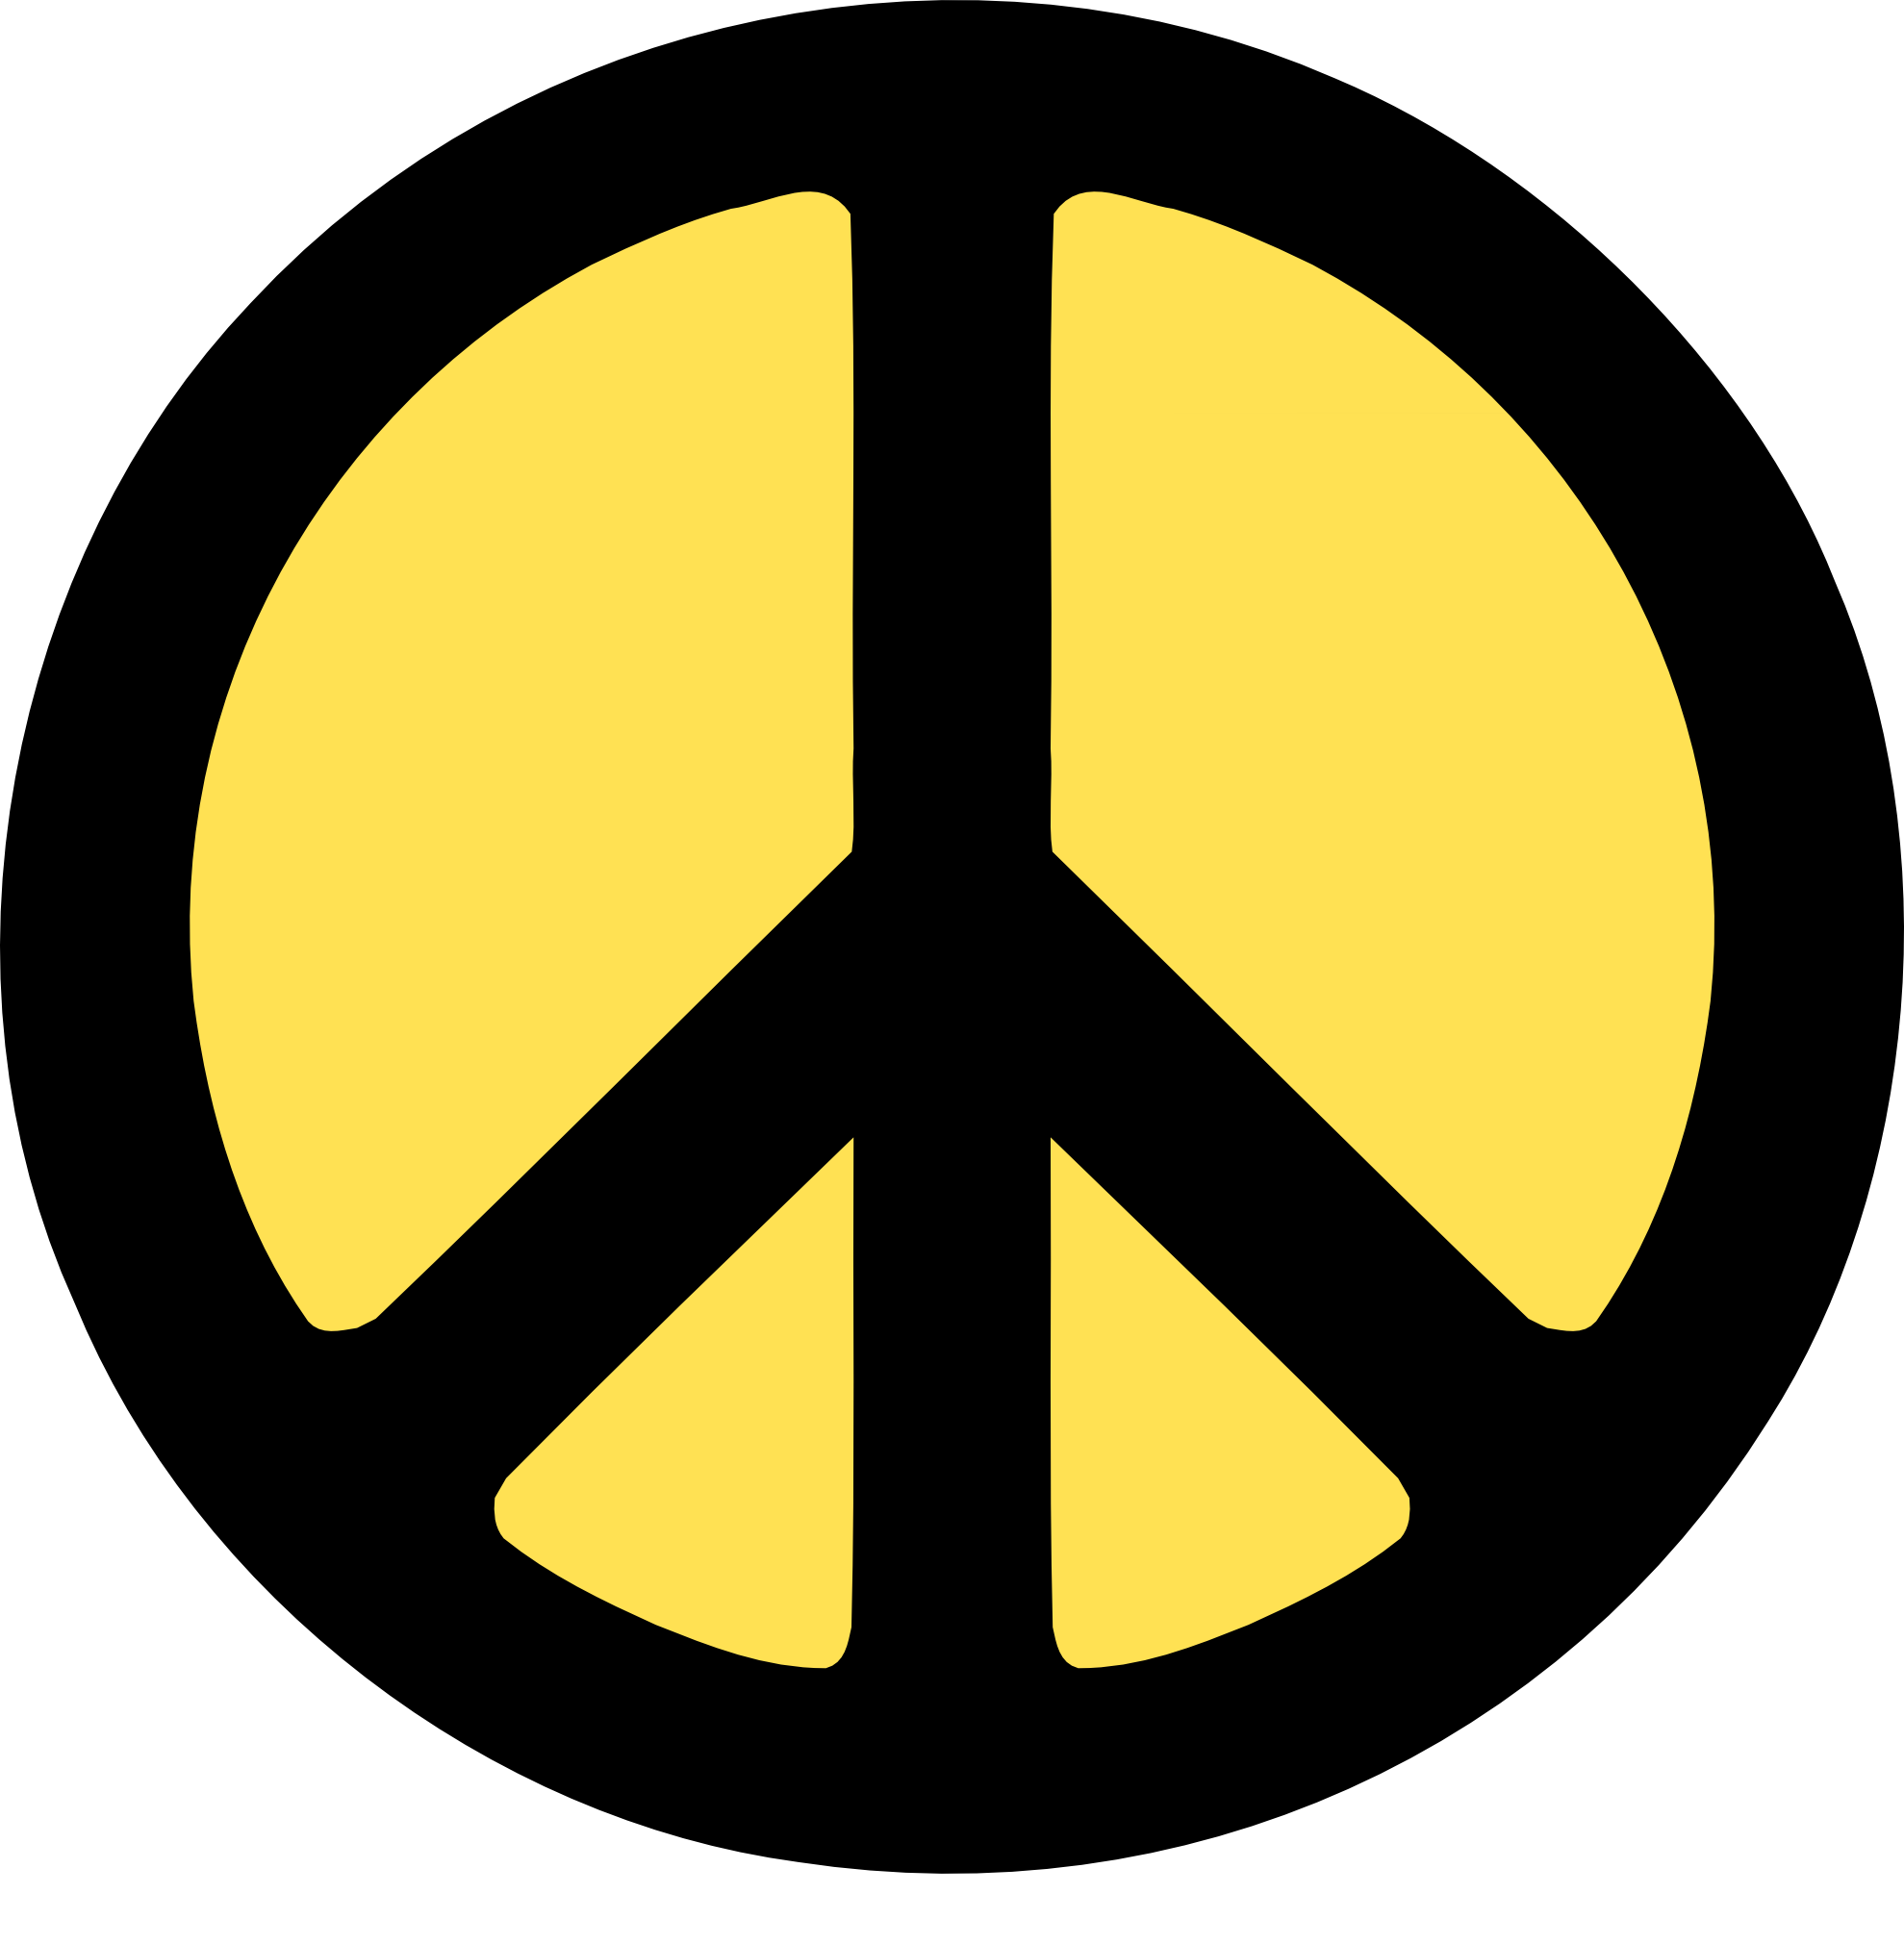 Peace clipart yellow 111(K) wall sign 2 Art